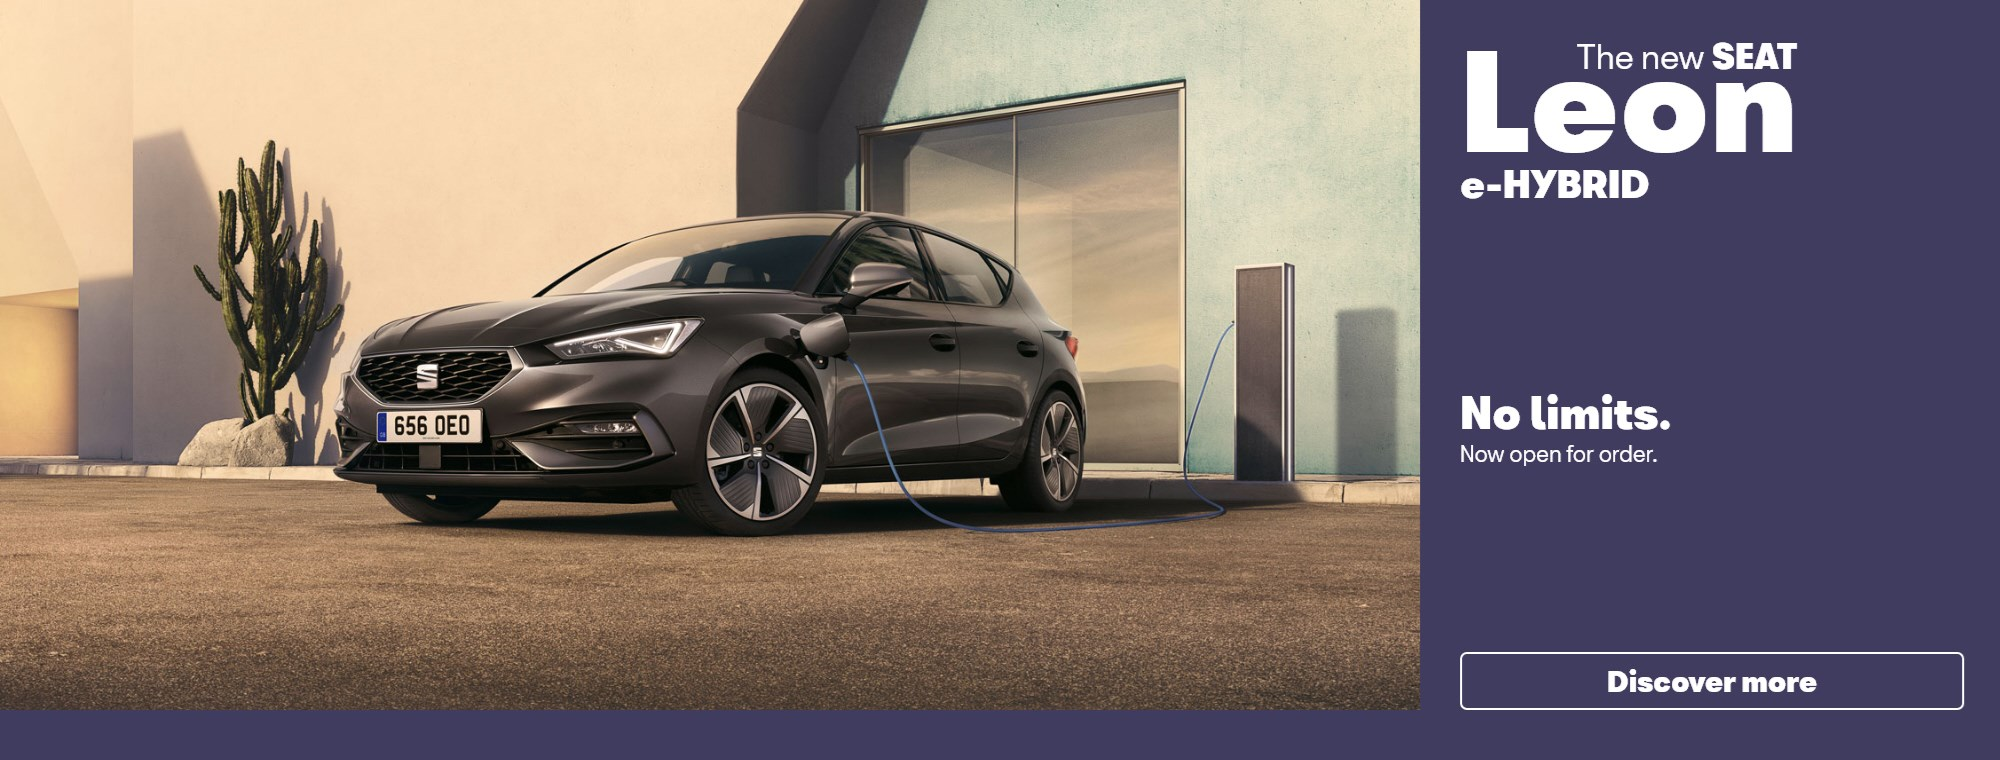 New SEAT Leon e-Hybrid available to order from Chippenham Motor Company